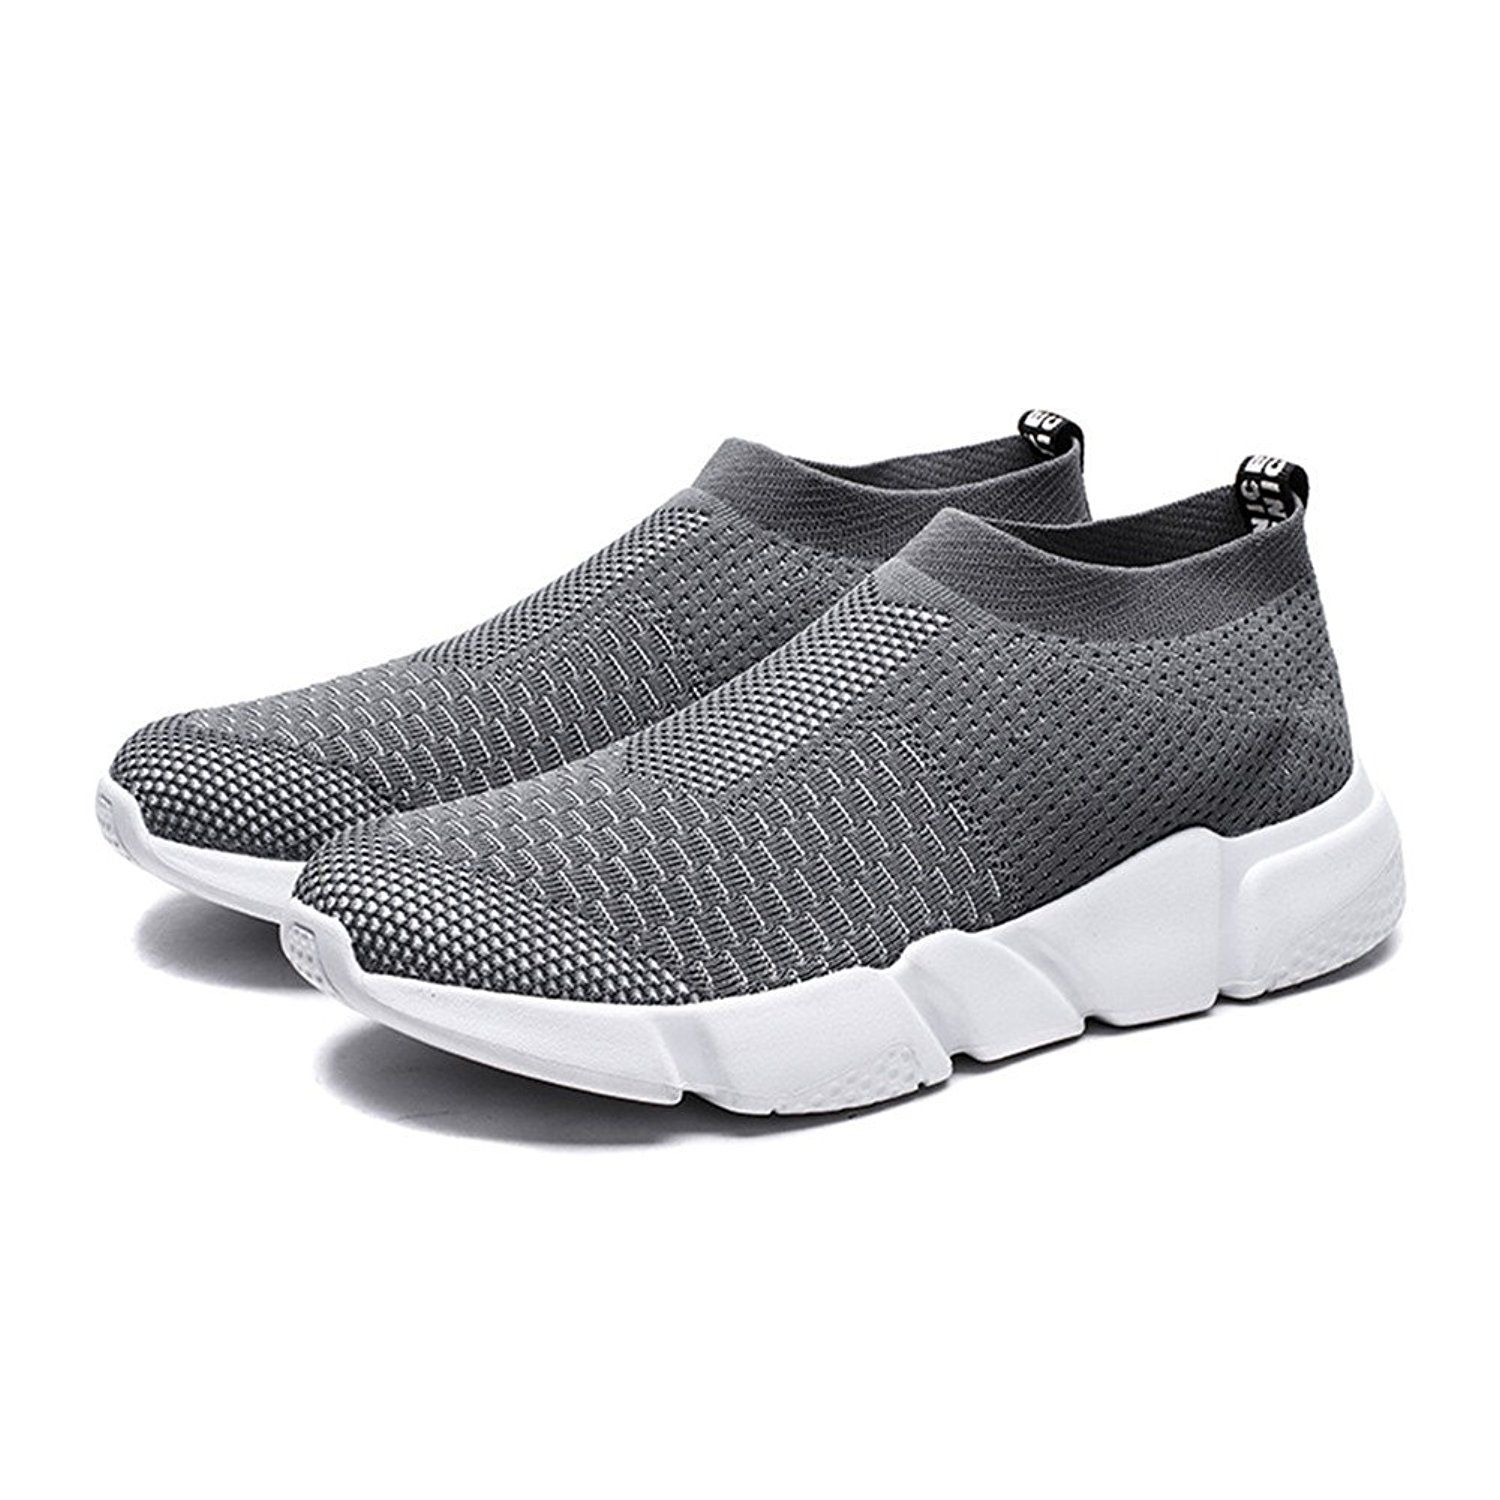 Shoes Couples Shoes Mens Casual Shoes Womens Sneakers Low-Top Breathable Running Shoes Lightweight (Color : Gray Size : 40)